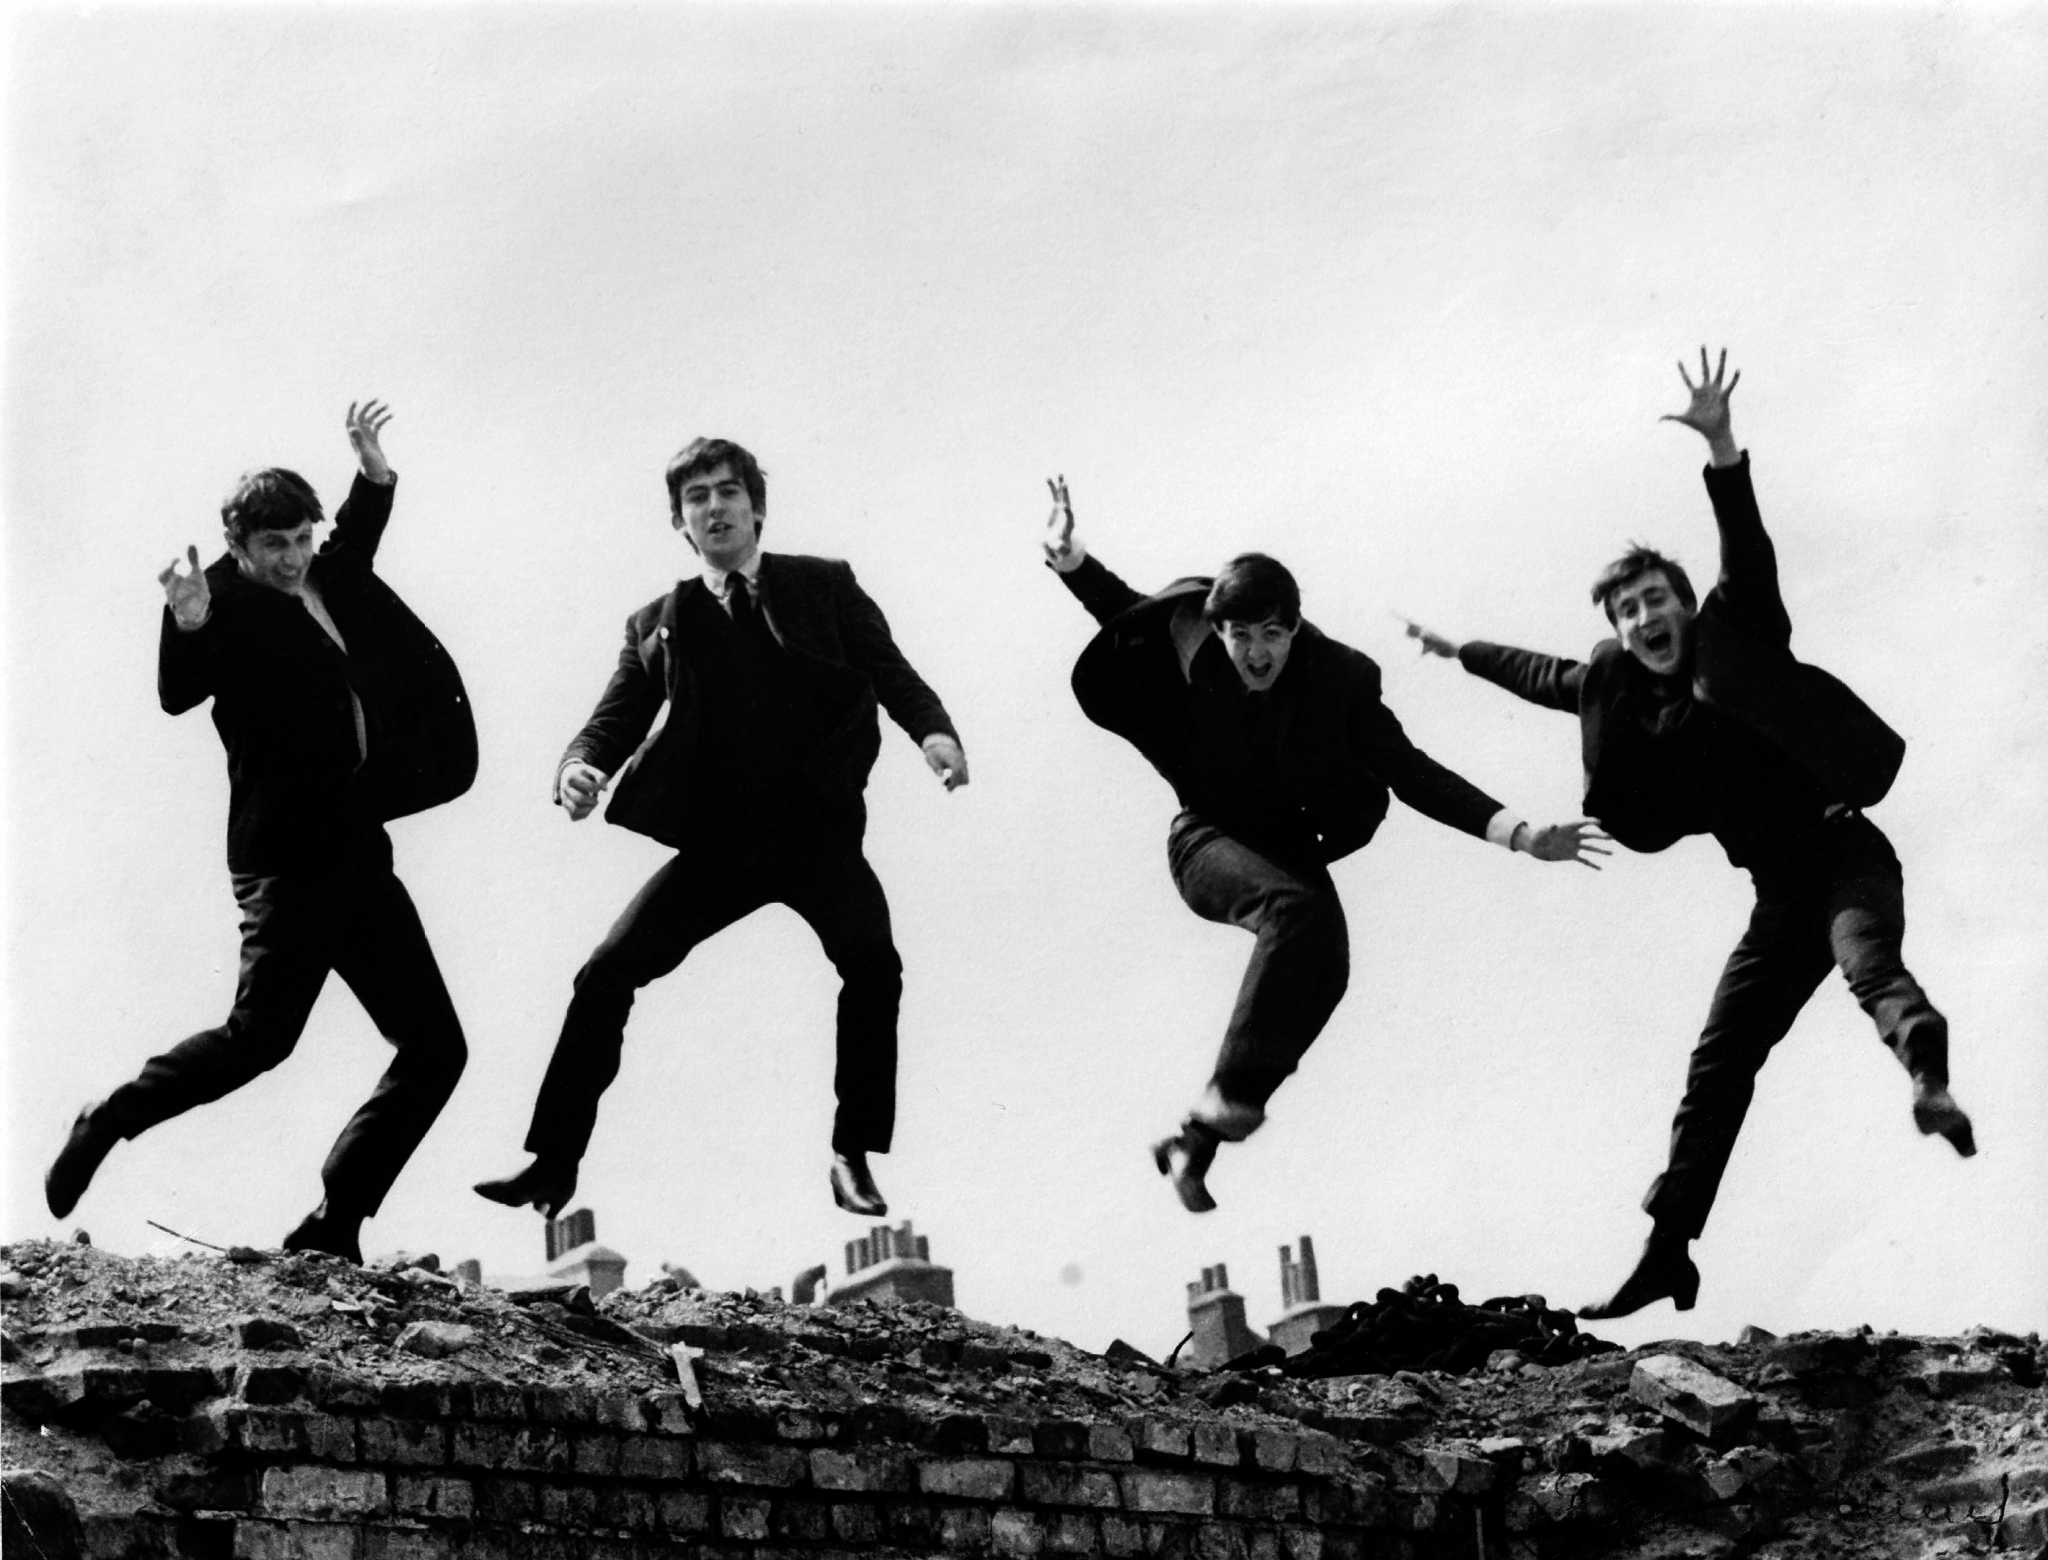 Fiona Adams, photographer who captured the Beatles on the rise, dies at 84